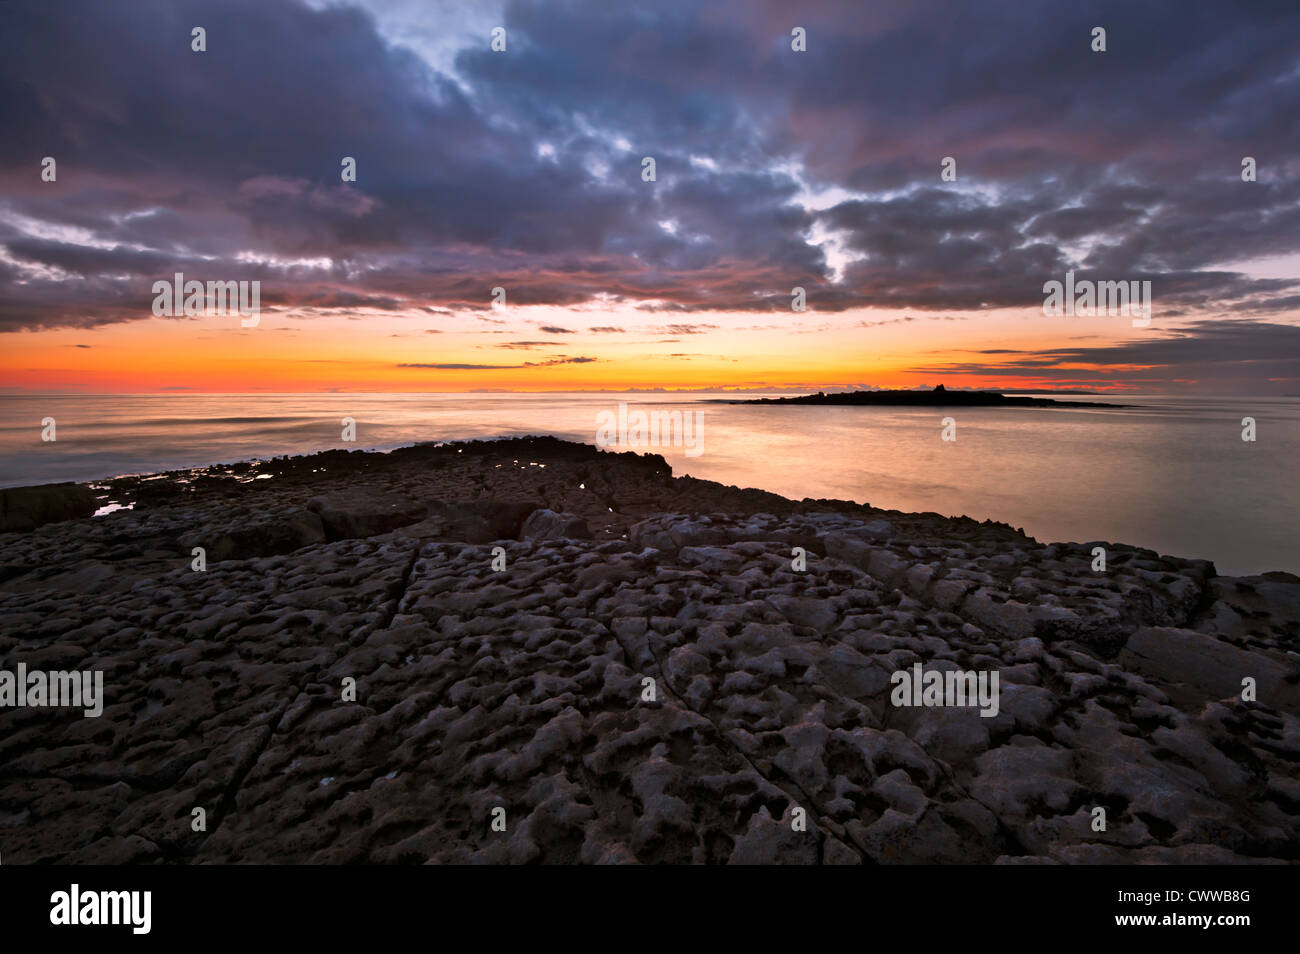 Sun setting over beach rock formations - Stock Image